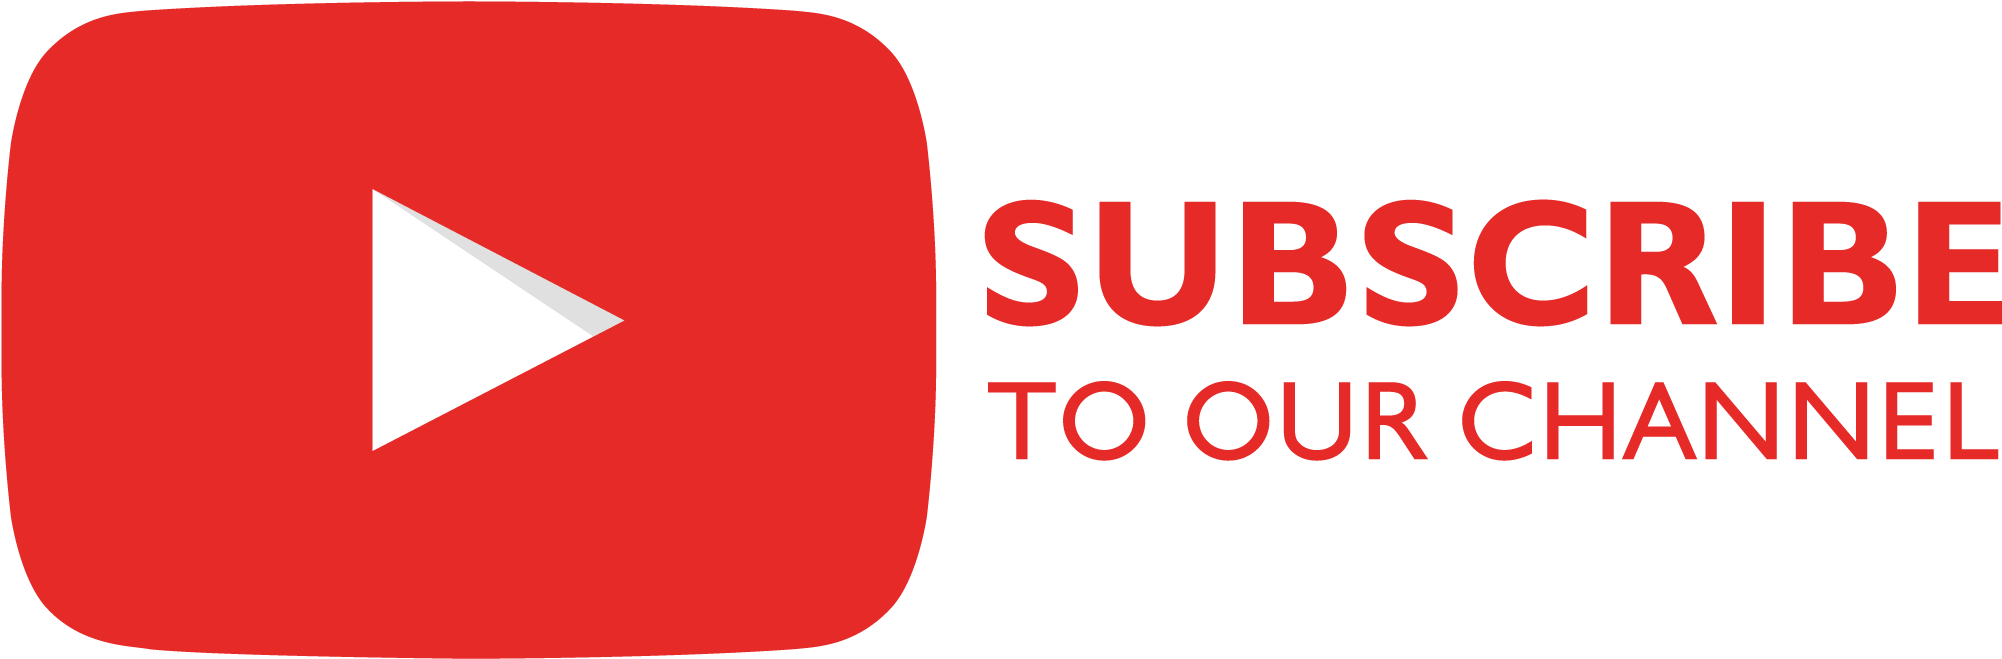 Youtube Subscribe Button Png Image Transparent Transparent Background Youtube Logo Full Size Png Download Seekpng